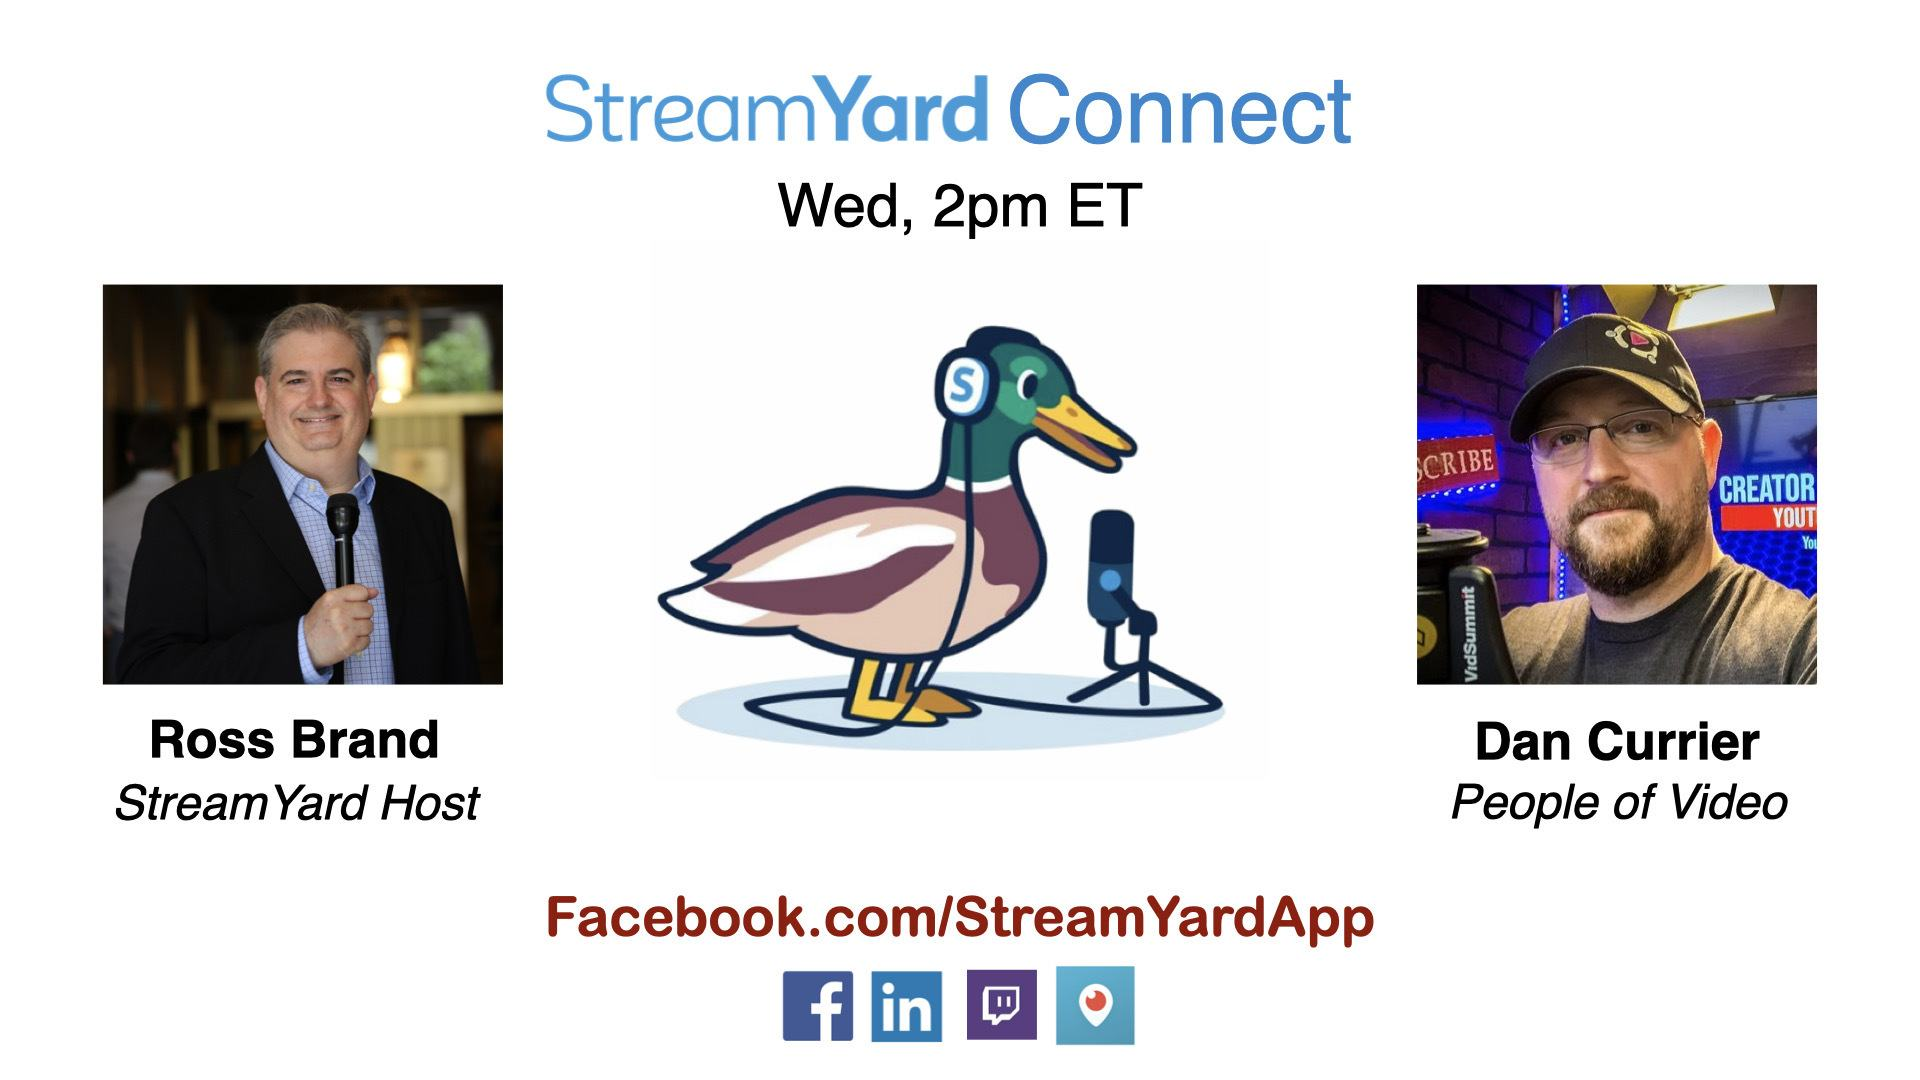 streamyard connect with ross brand ep25 dan currier people of video